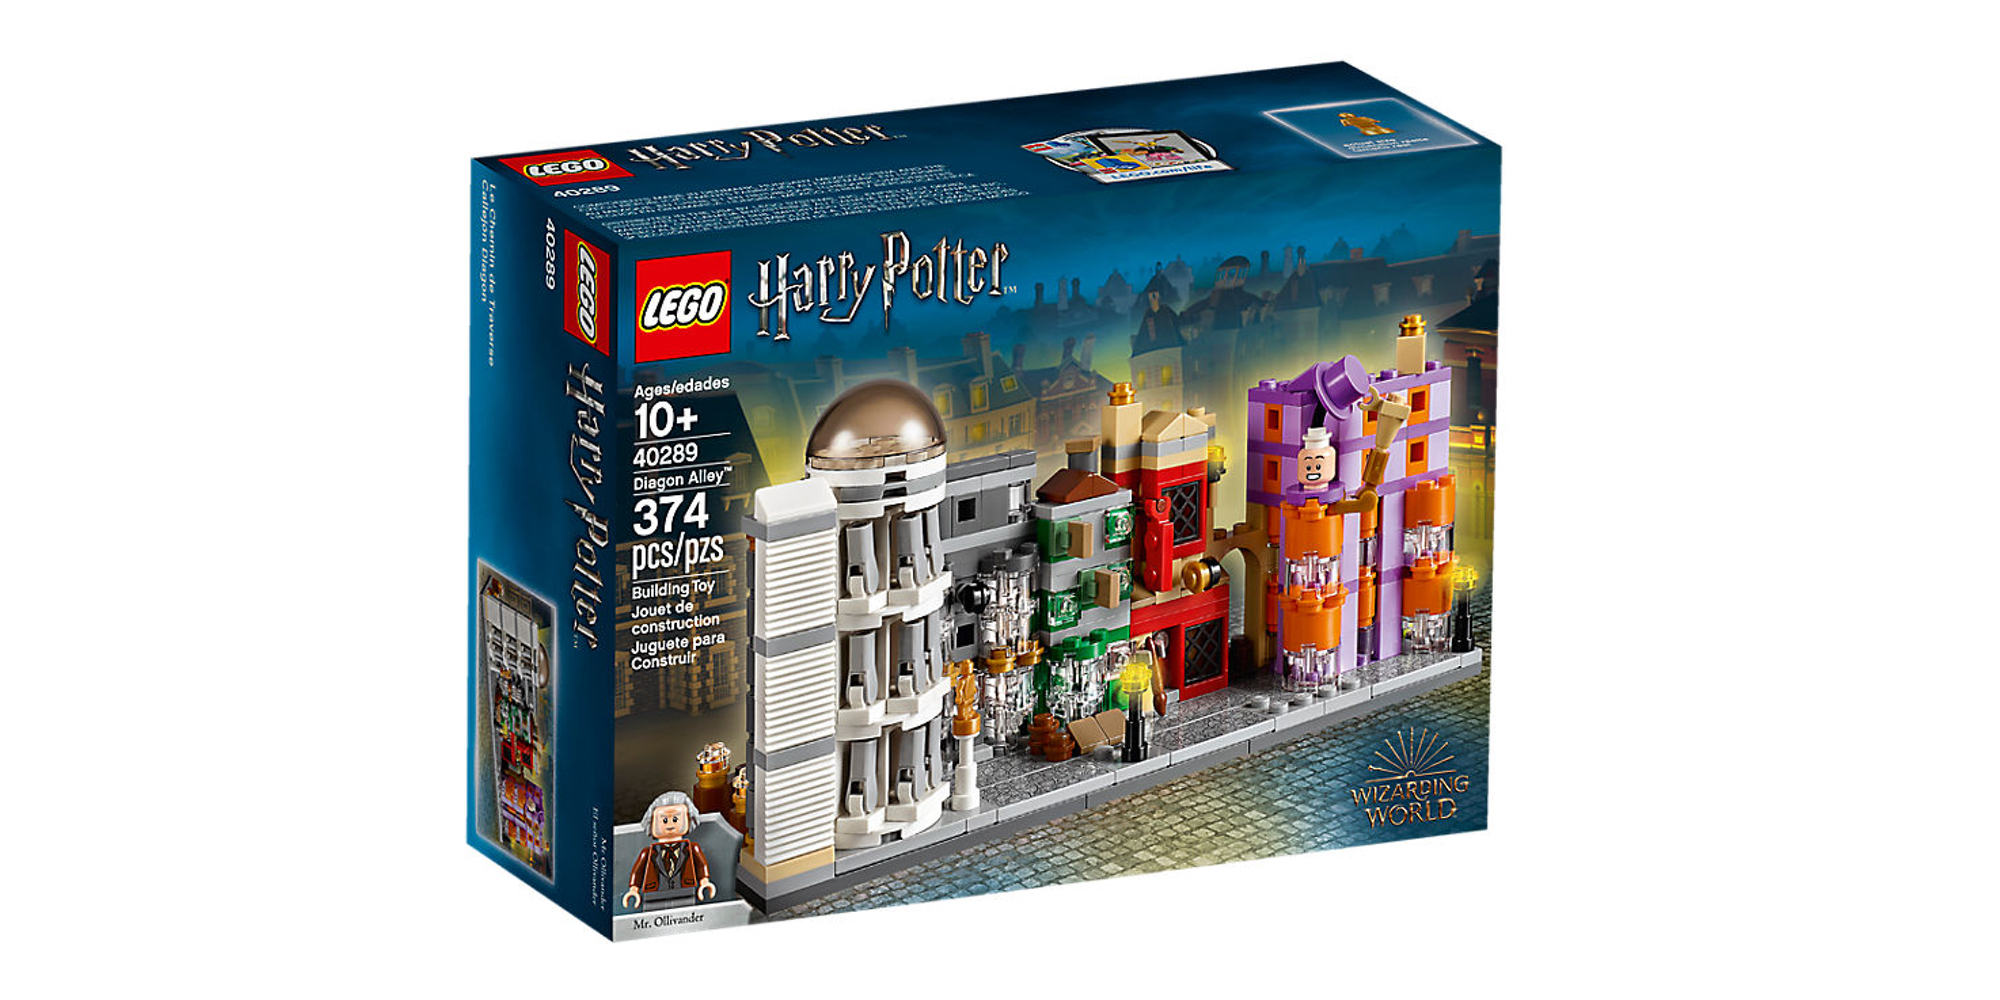 LEGO Diagon Alley Box Front